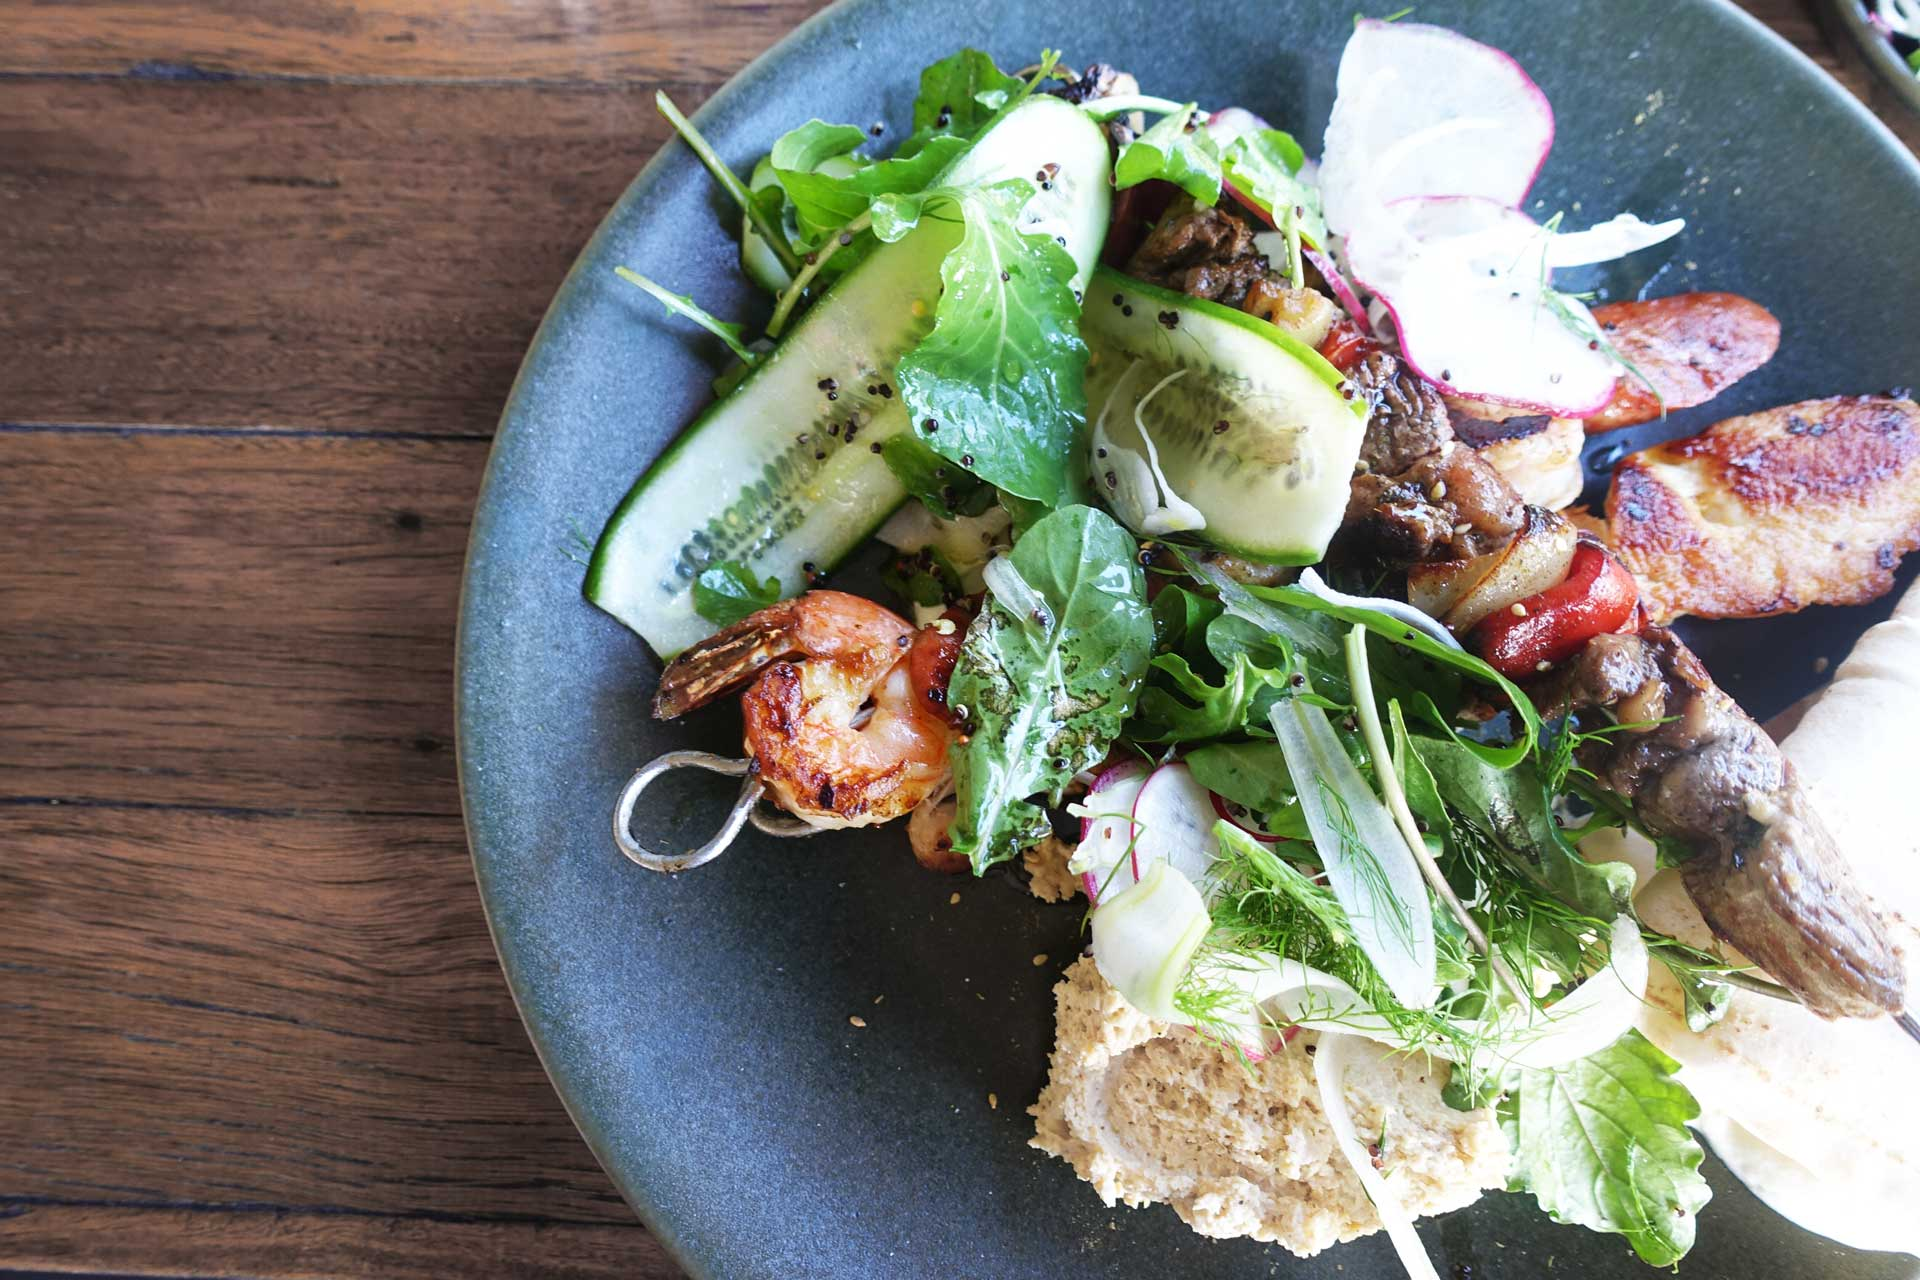 Countryside Brunch at Wildpear Cafe, Dural